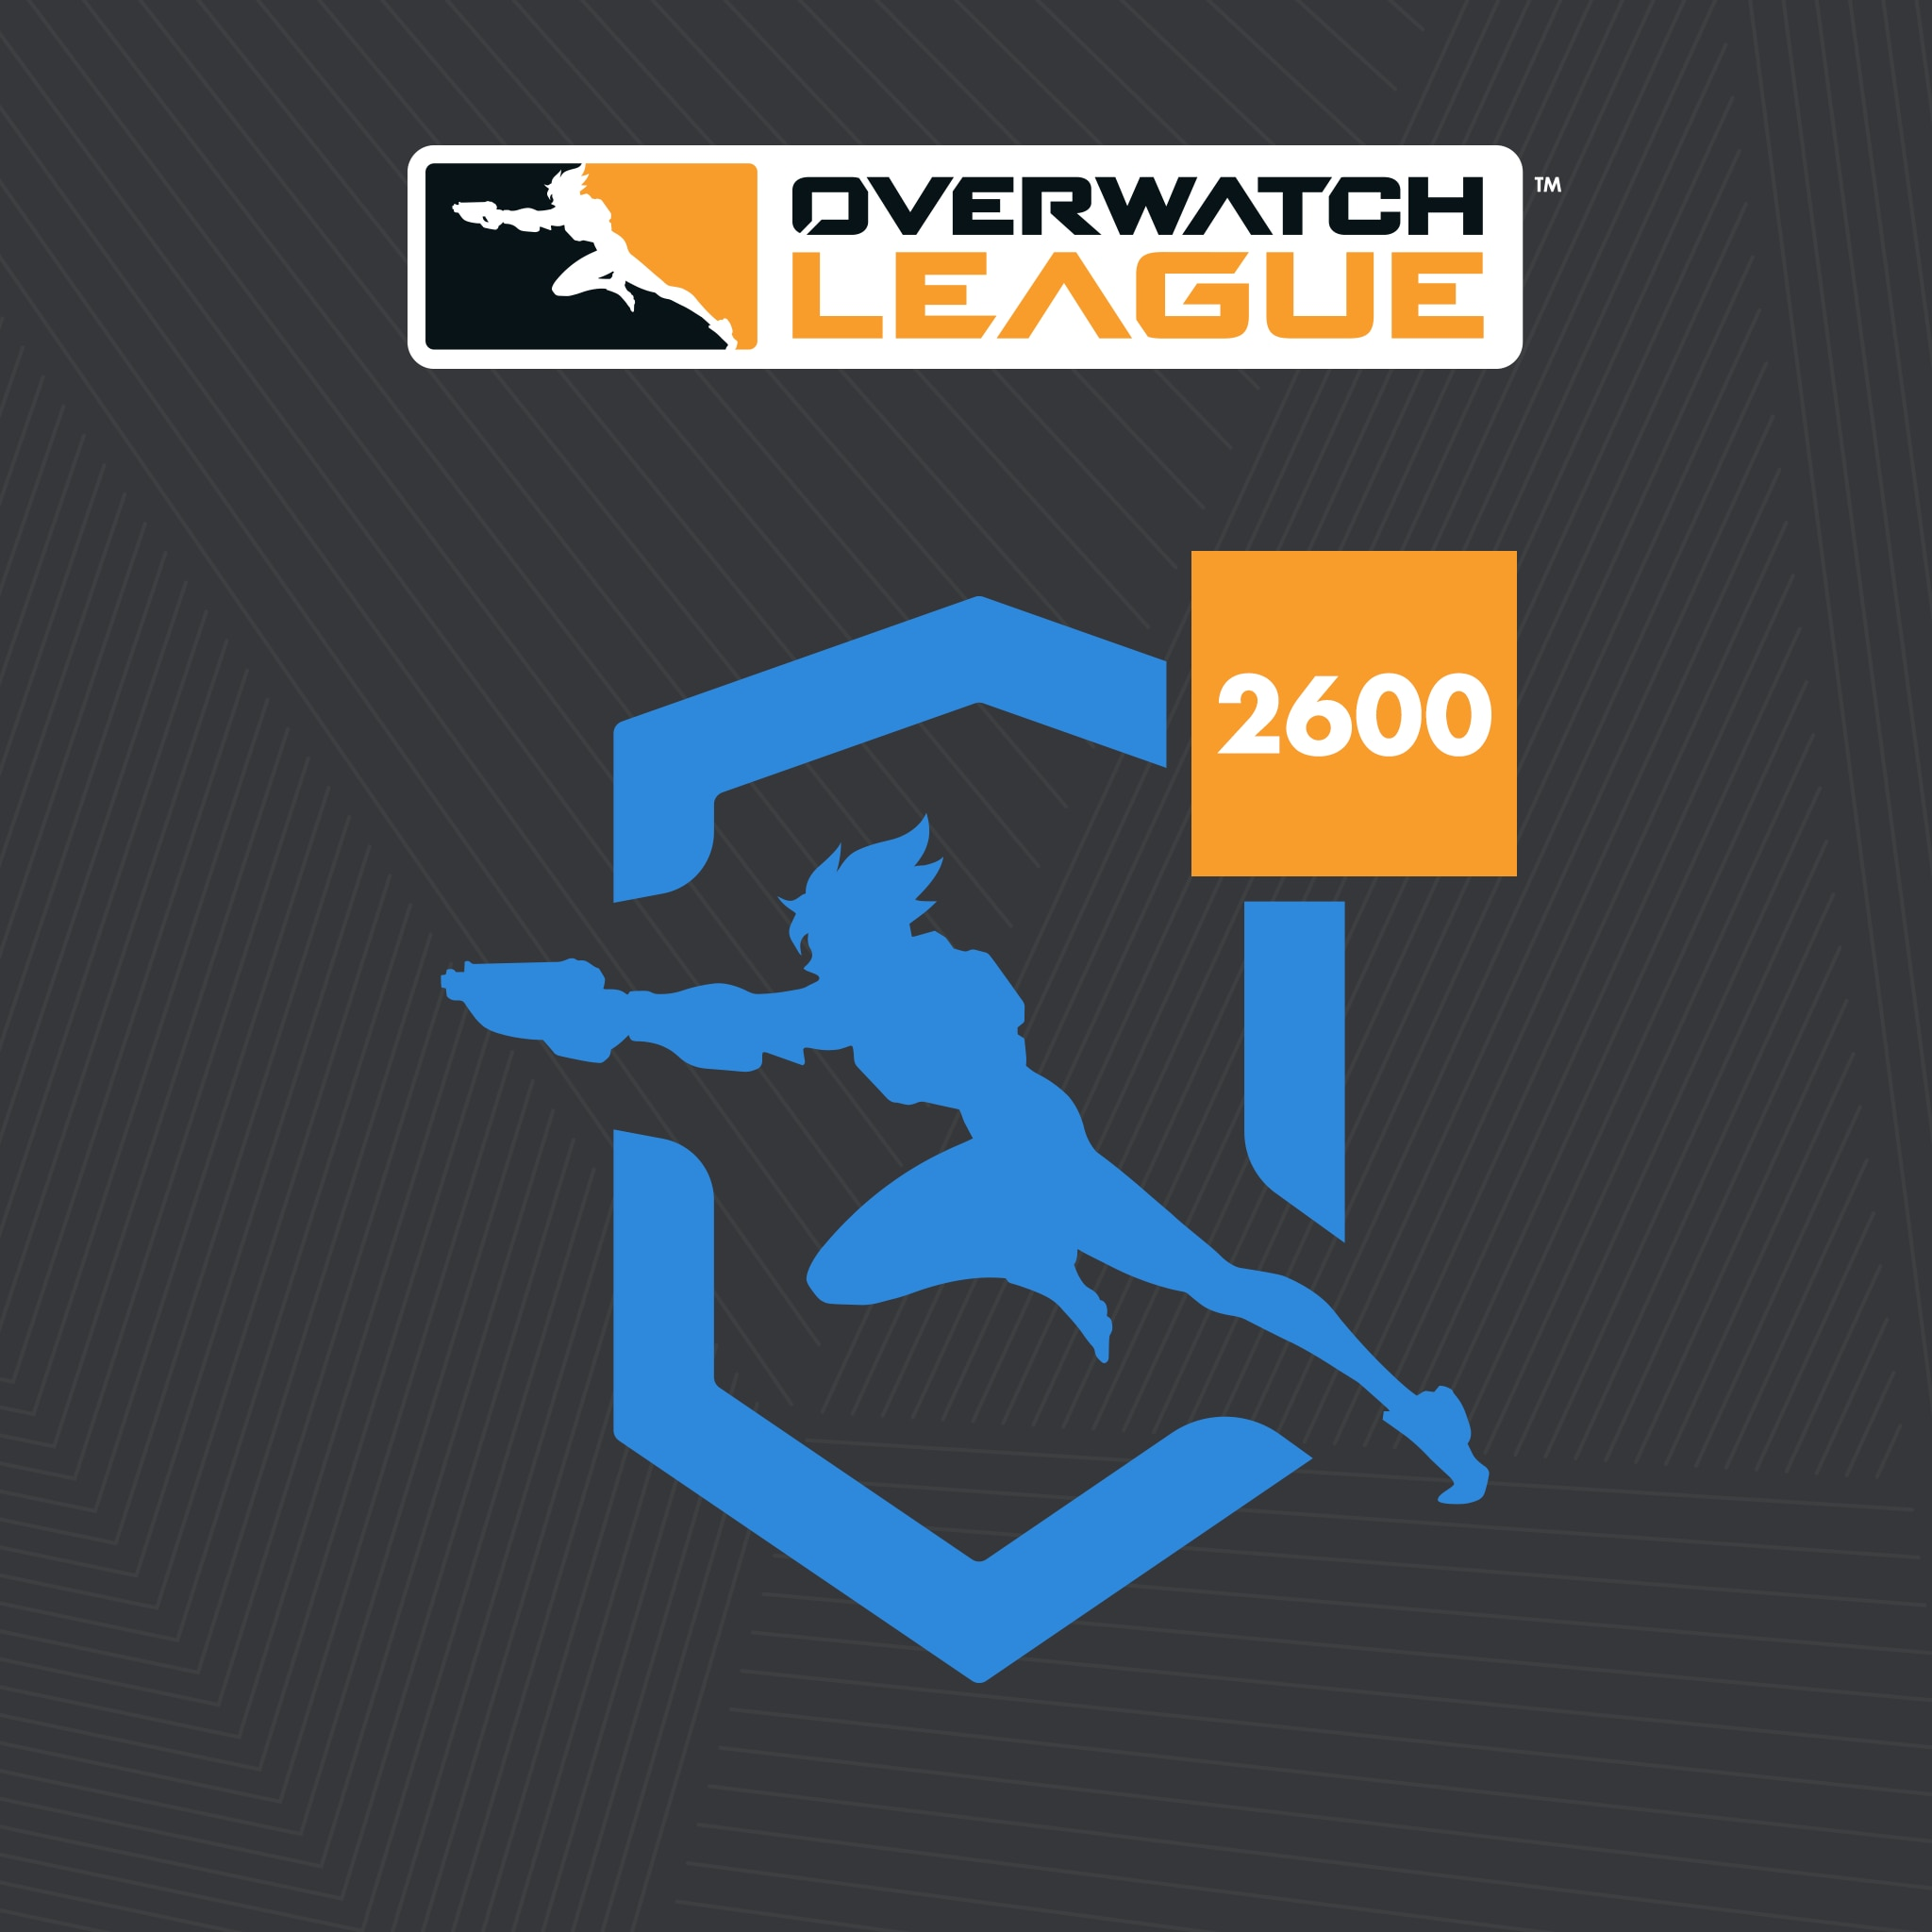 Overwatch League™ - 2 600 jetons de ligue